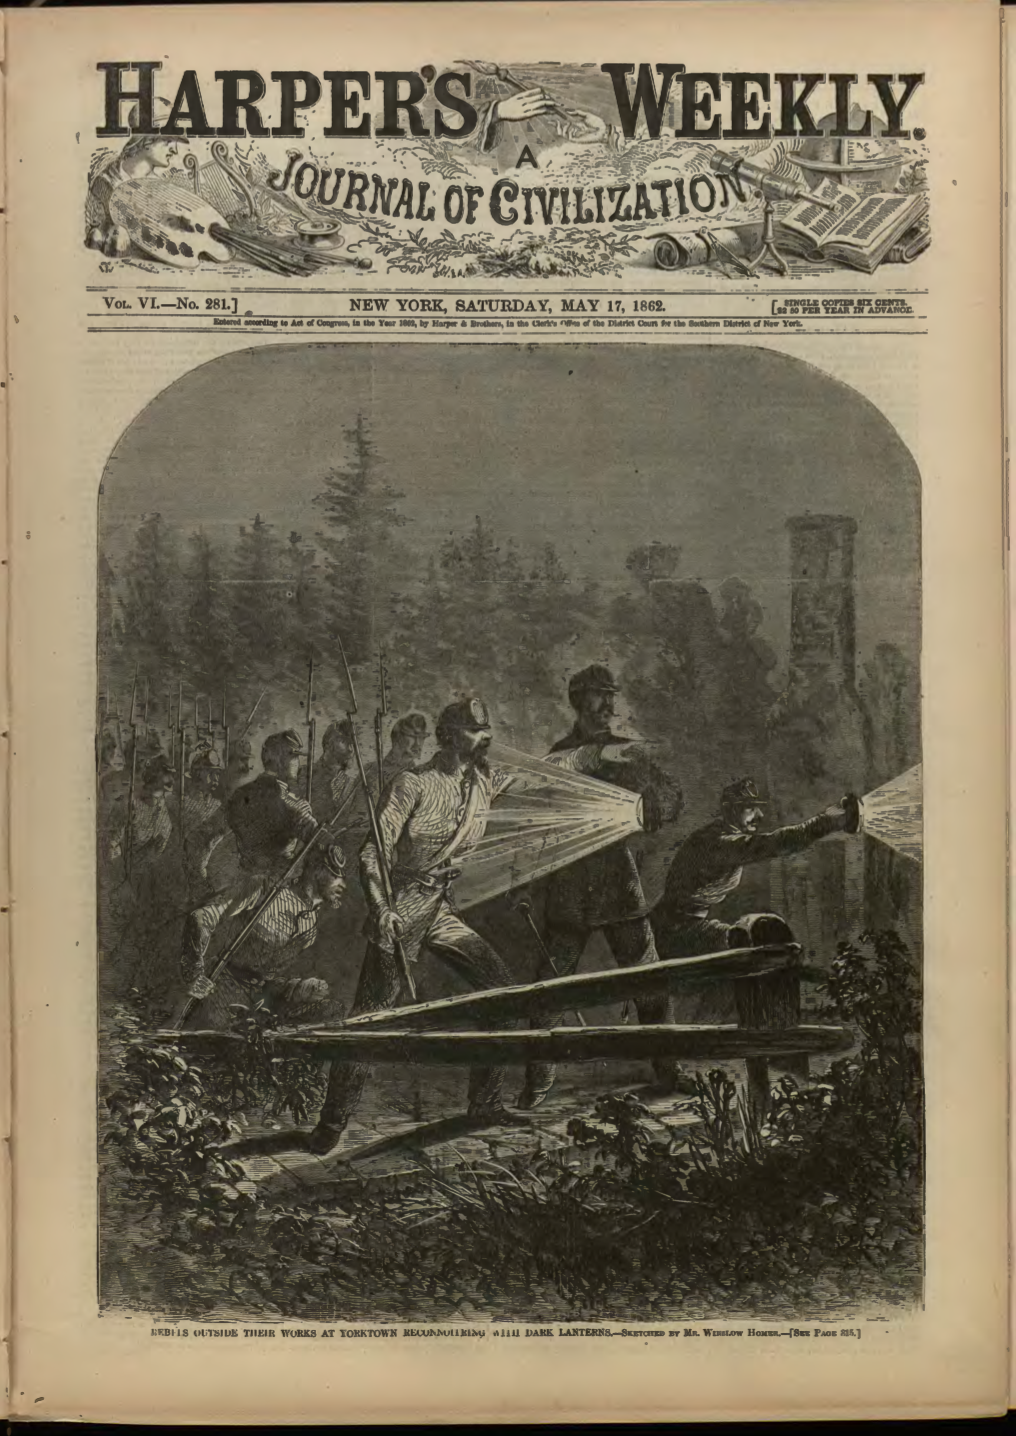 Harper's Weekly 620517 fr BACM Research